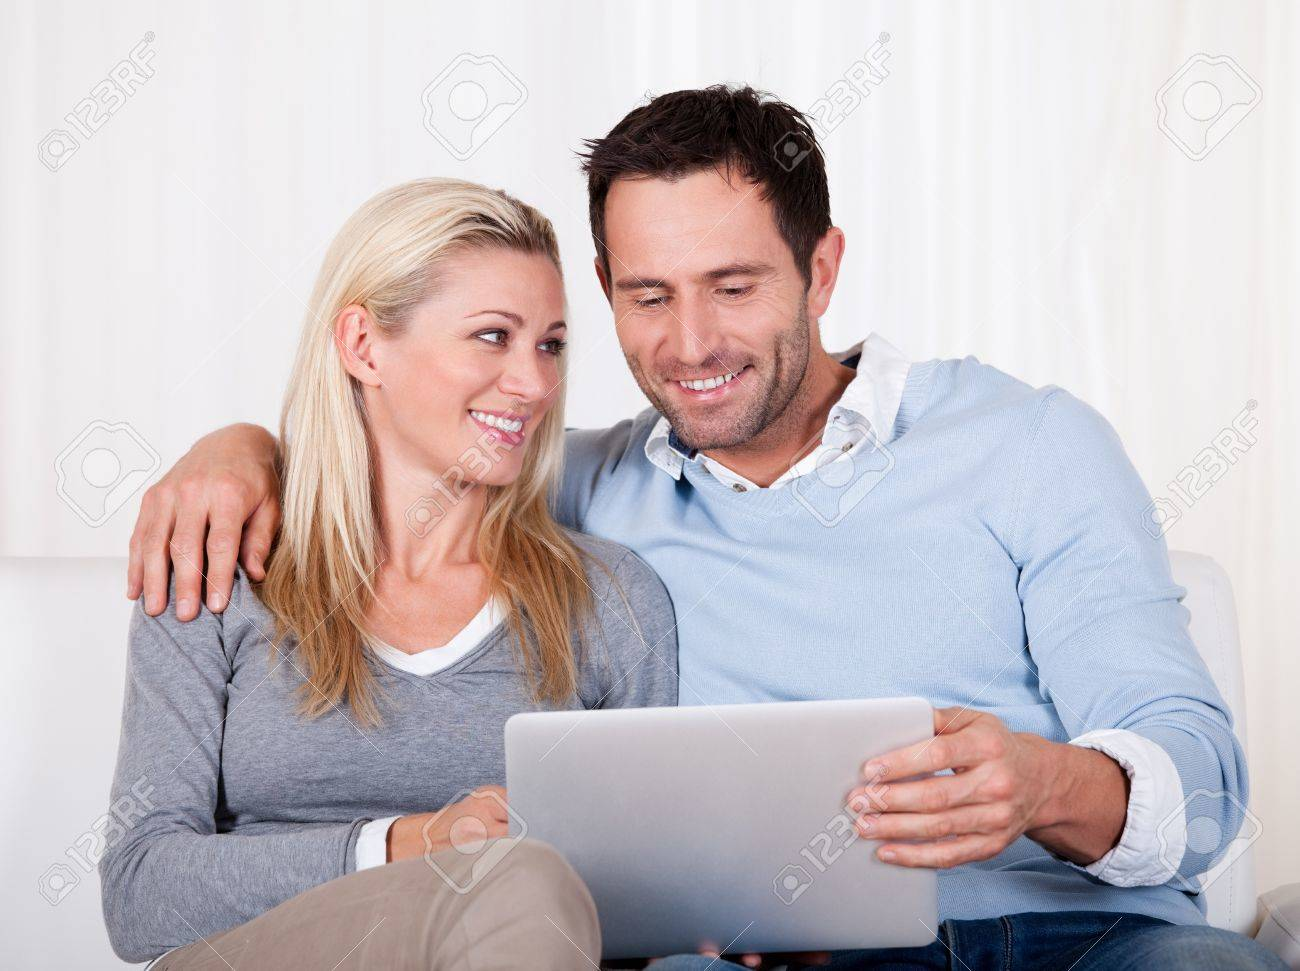 Beautiful young couple with lovely smiles sitting side by side on a sofa looking at a tablet together Stock Photo - 16886337